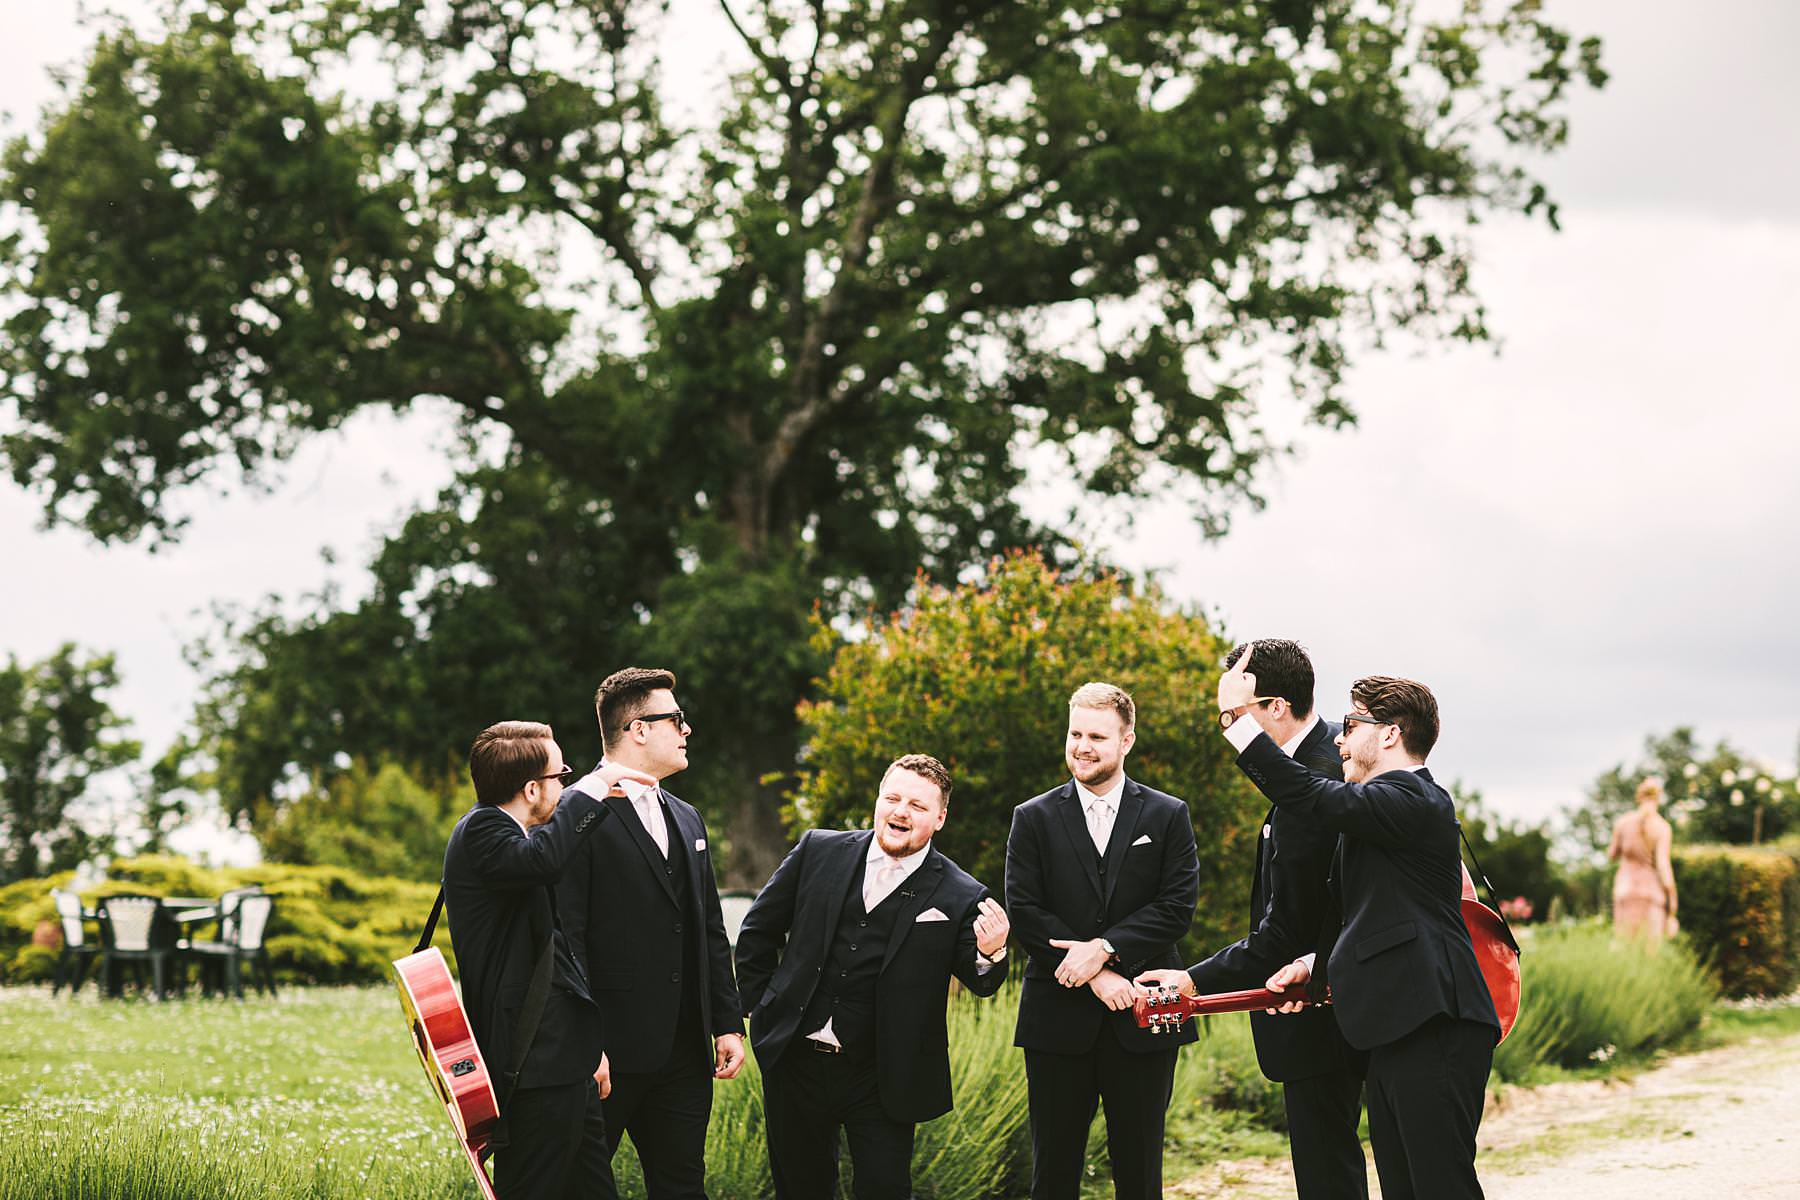 Groom and mens exciting photo shoot just before the outdoor intimate destination wedding ceremony in Tuscany countryside venue of Villa Le Bolli near Radicondoli